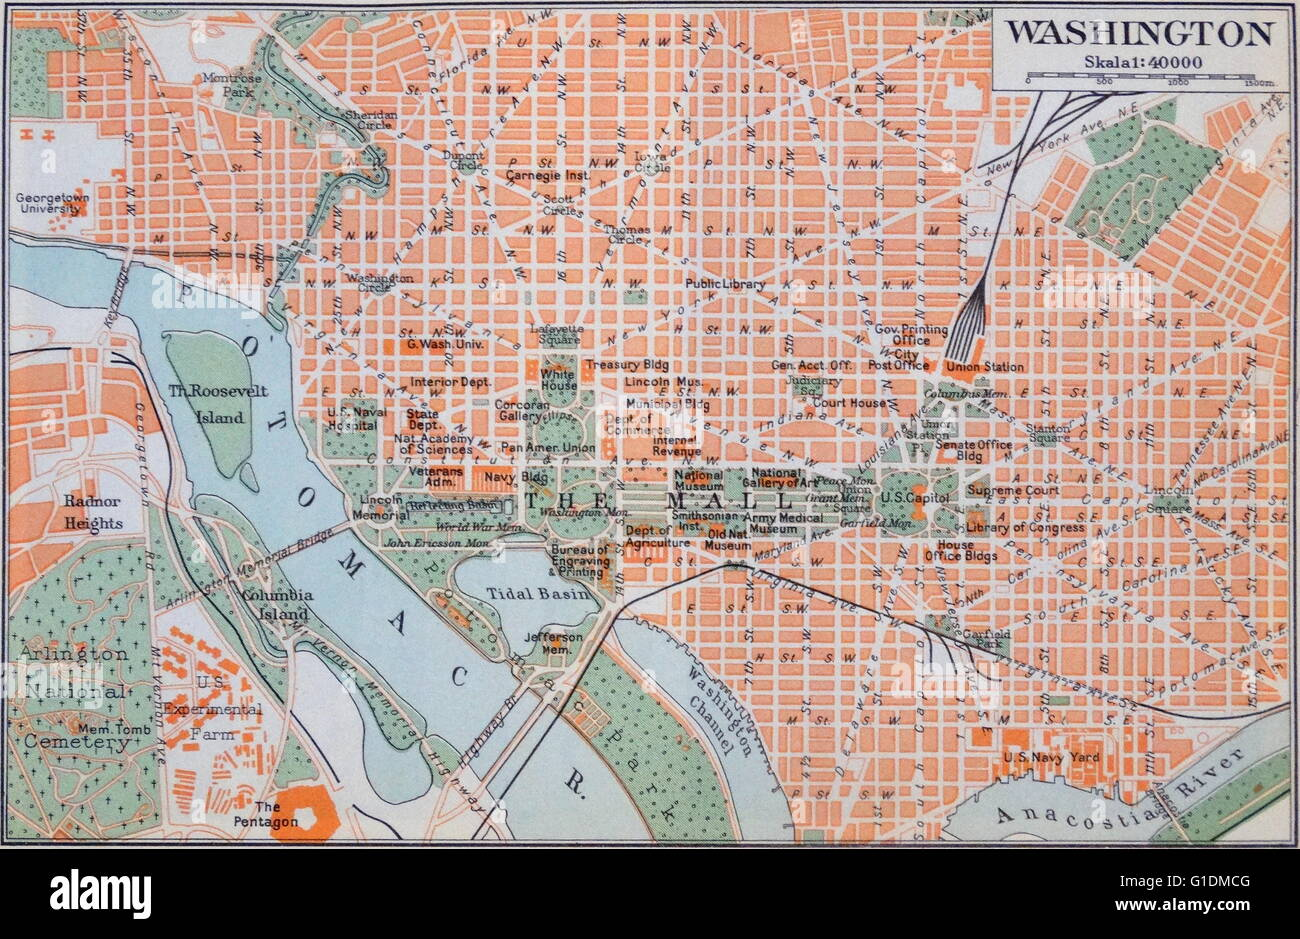 Map Of Washington D C During The 20th Century Stock Photo